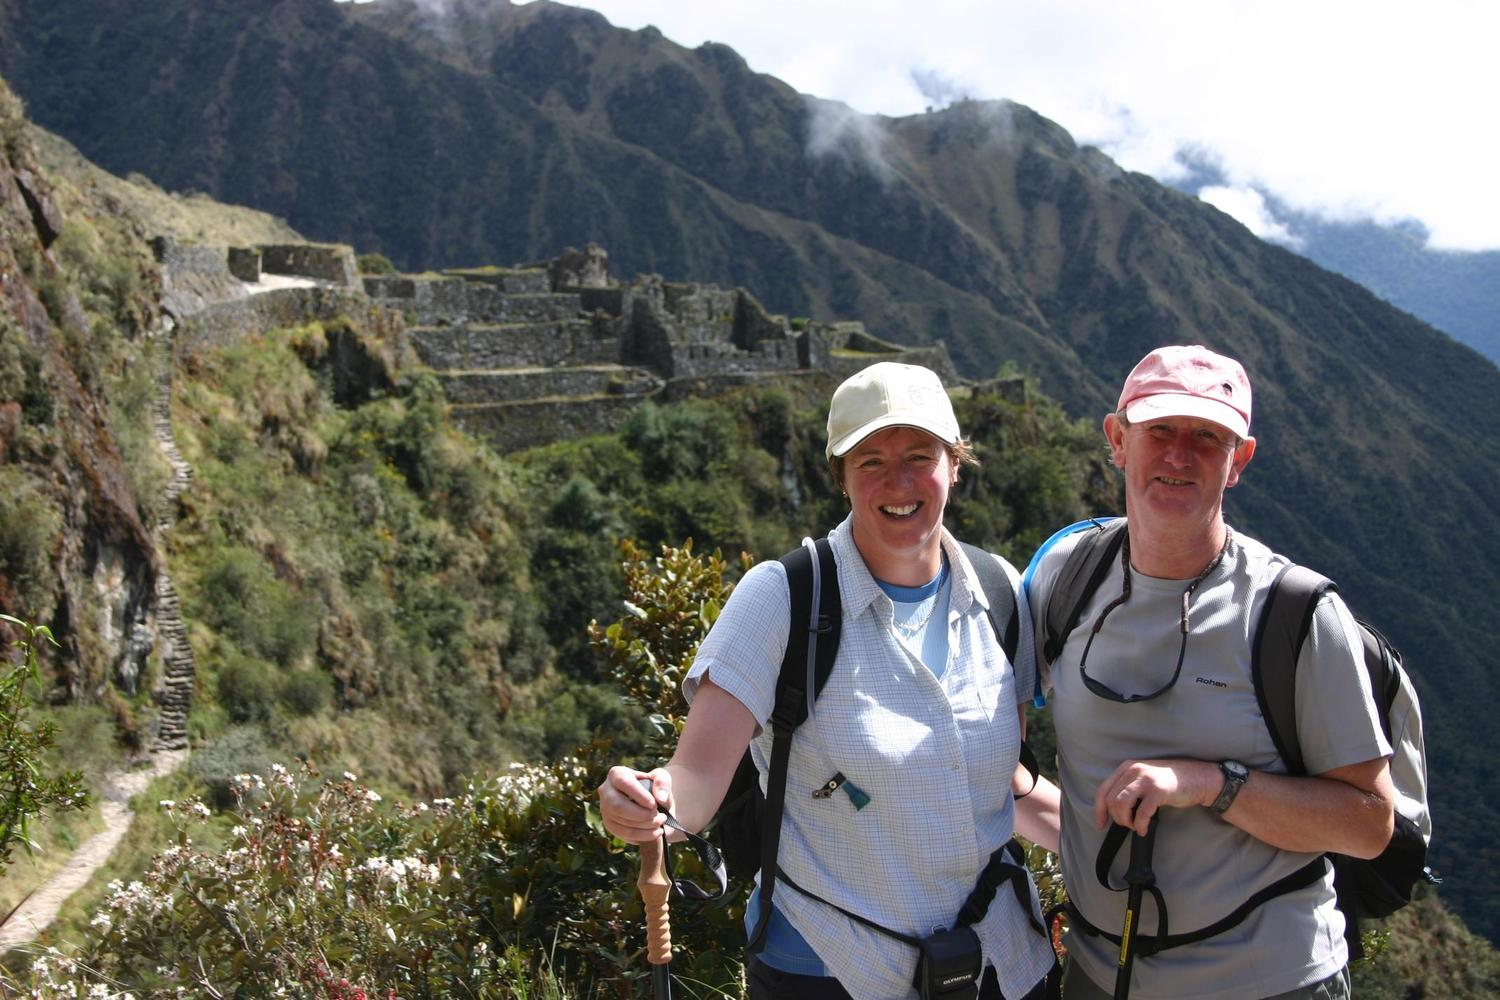 The Inca Trail isn't just about getting to Machu Picchu, it's a beautiful walk in itself